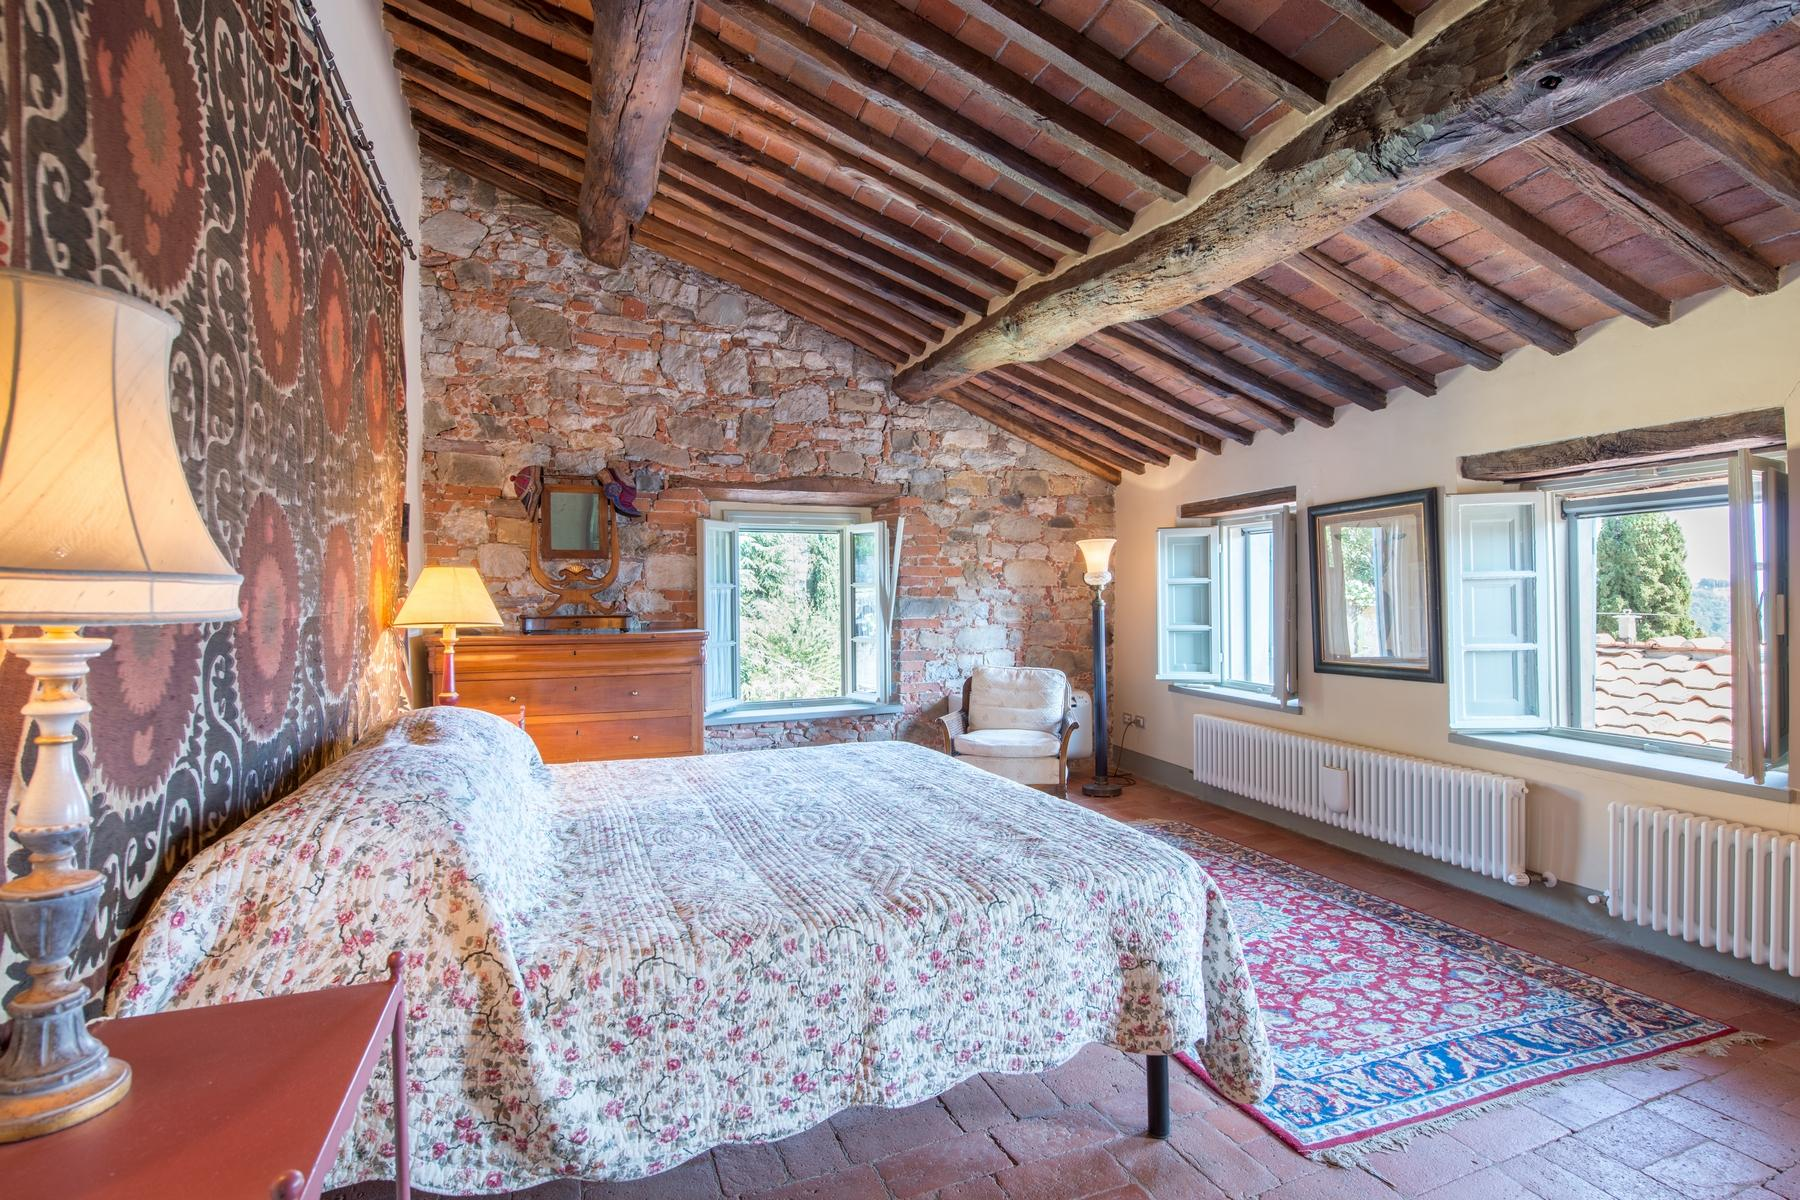 Beautiful 17th century villa near Lucca - 7